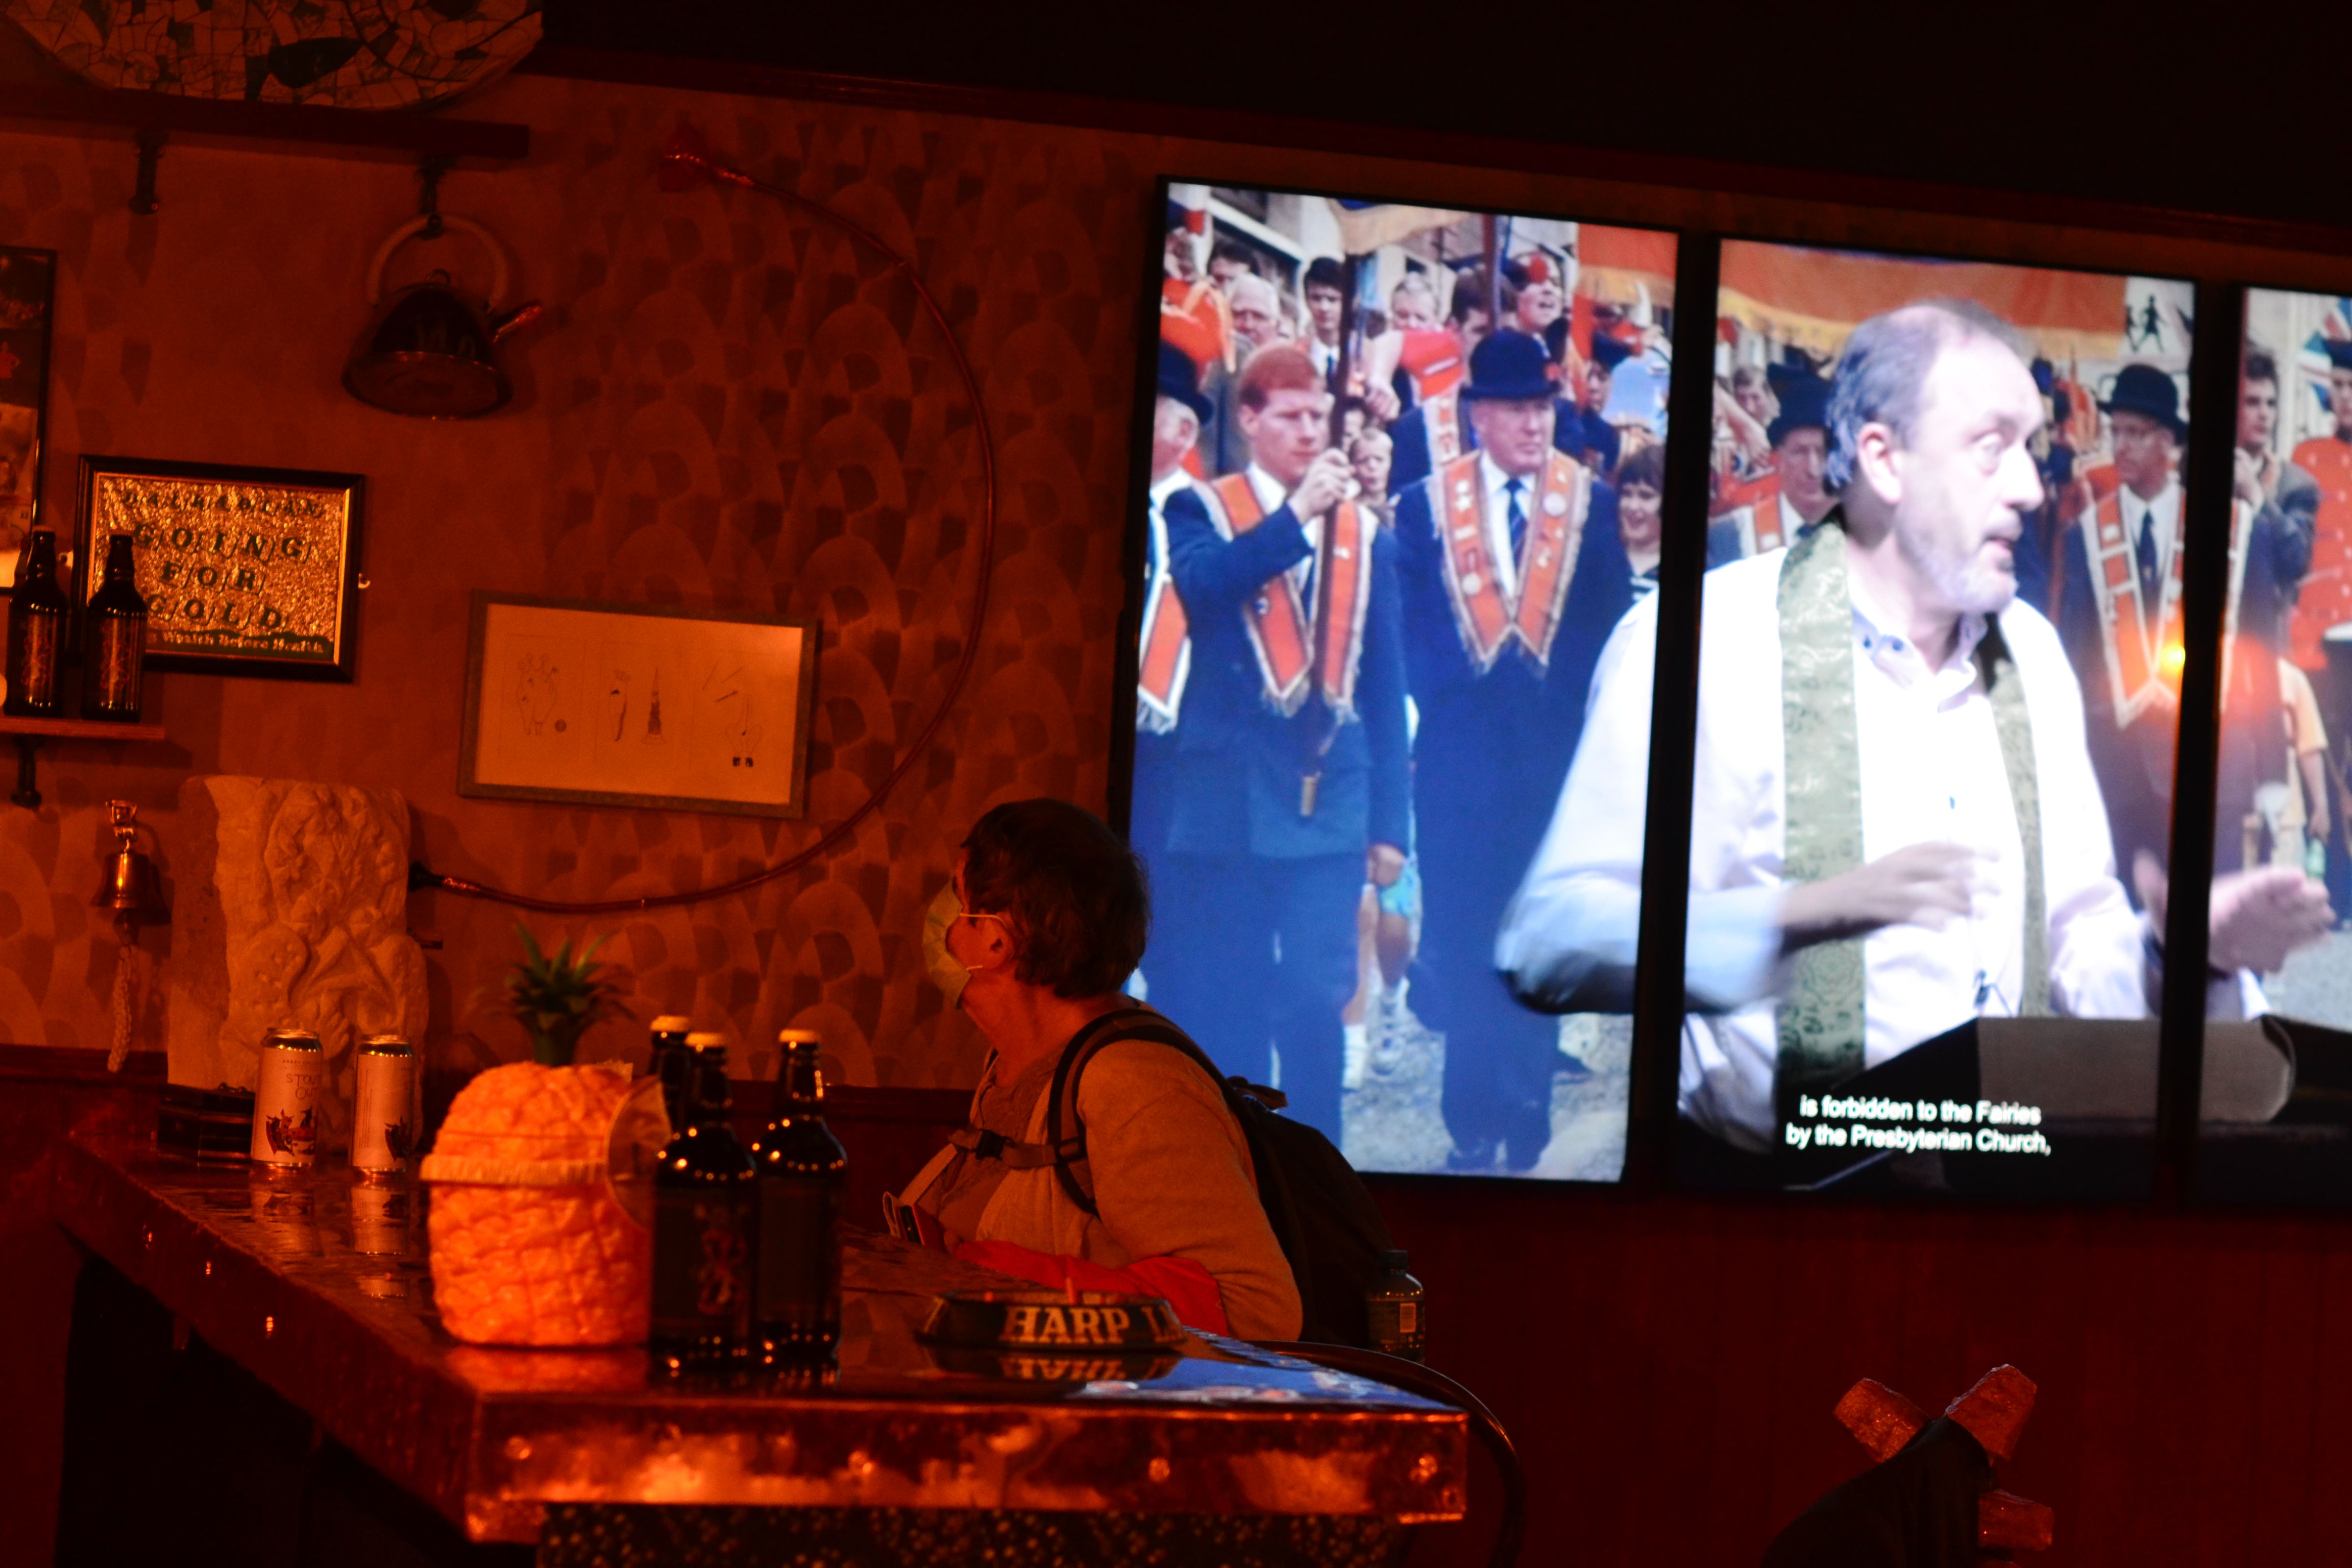 WHAT'LL IT BE? The Array Collective Turner Prize entry presents a selection of images and ideas in a Belfast pub setting